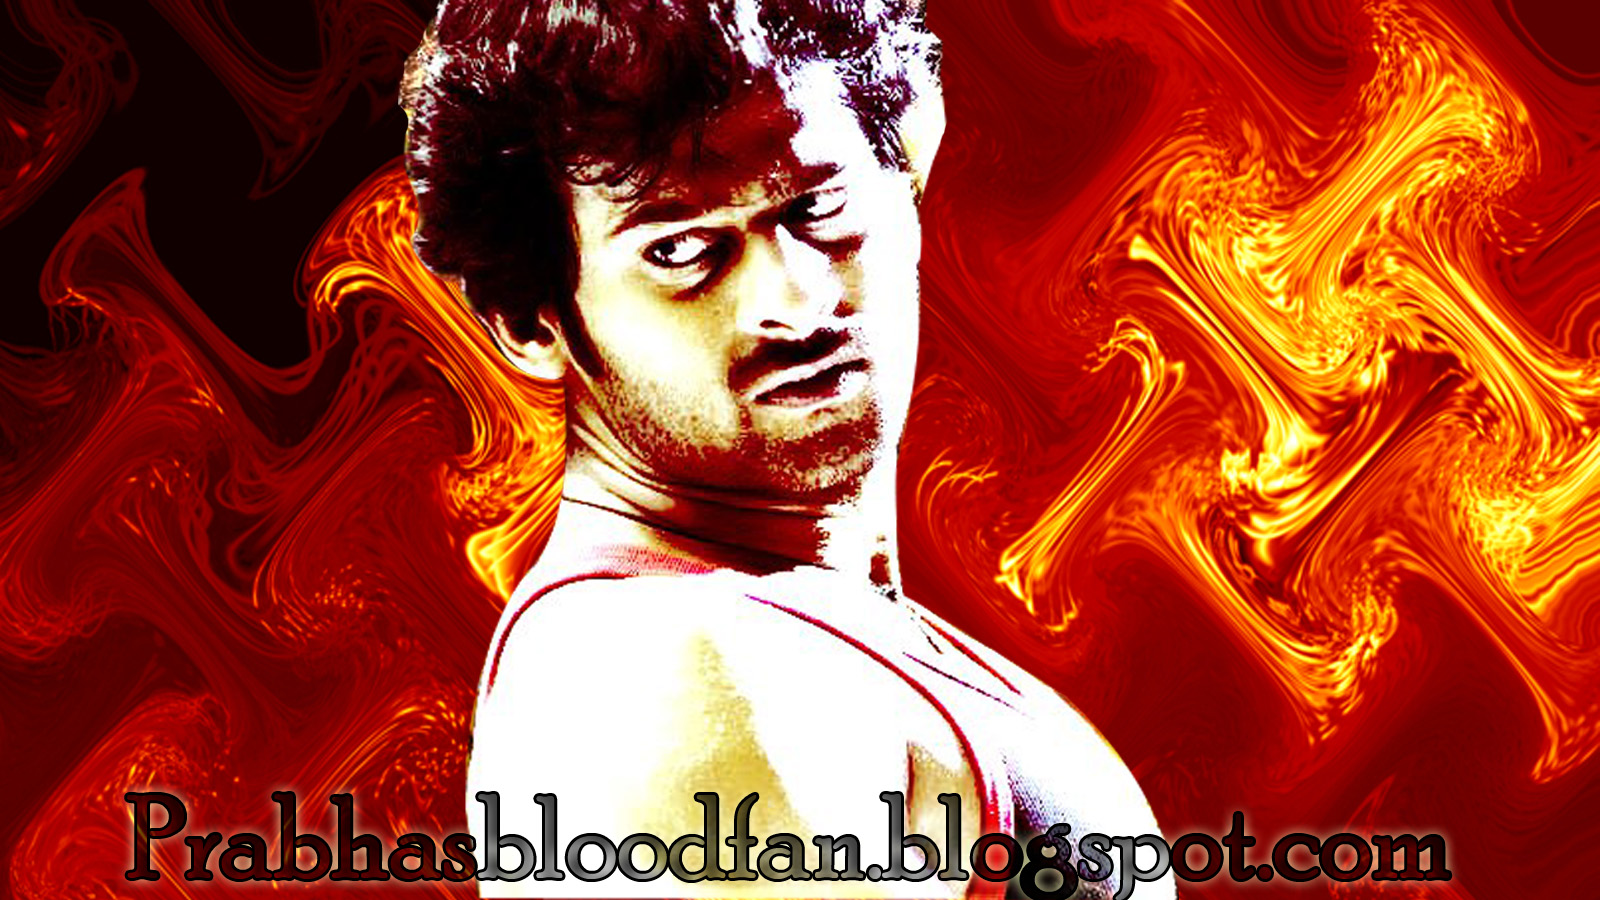 Stylish Prabhas Hq Wallpaper In Rebel: Rebelstar Prabhas Latest Updates: Prabhas Wallpaper